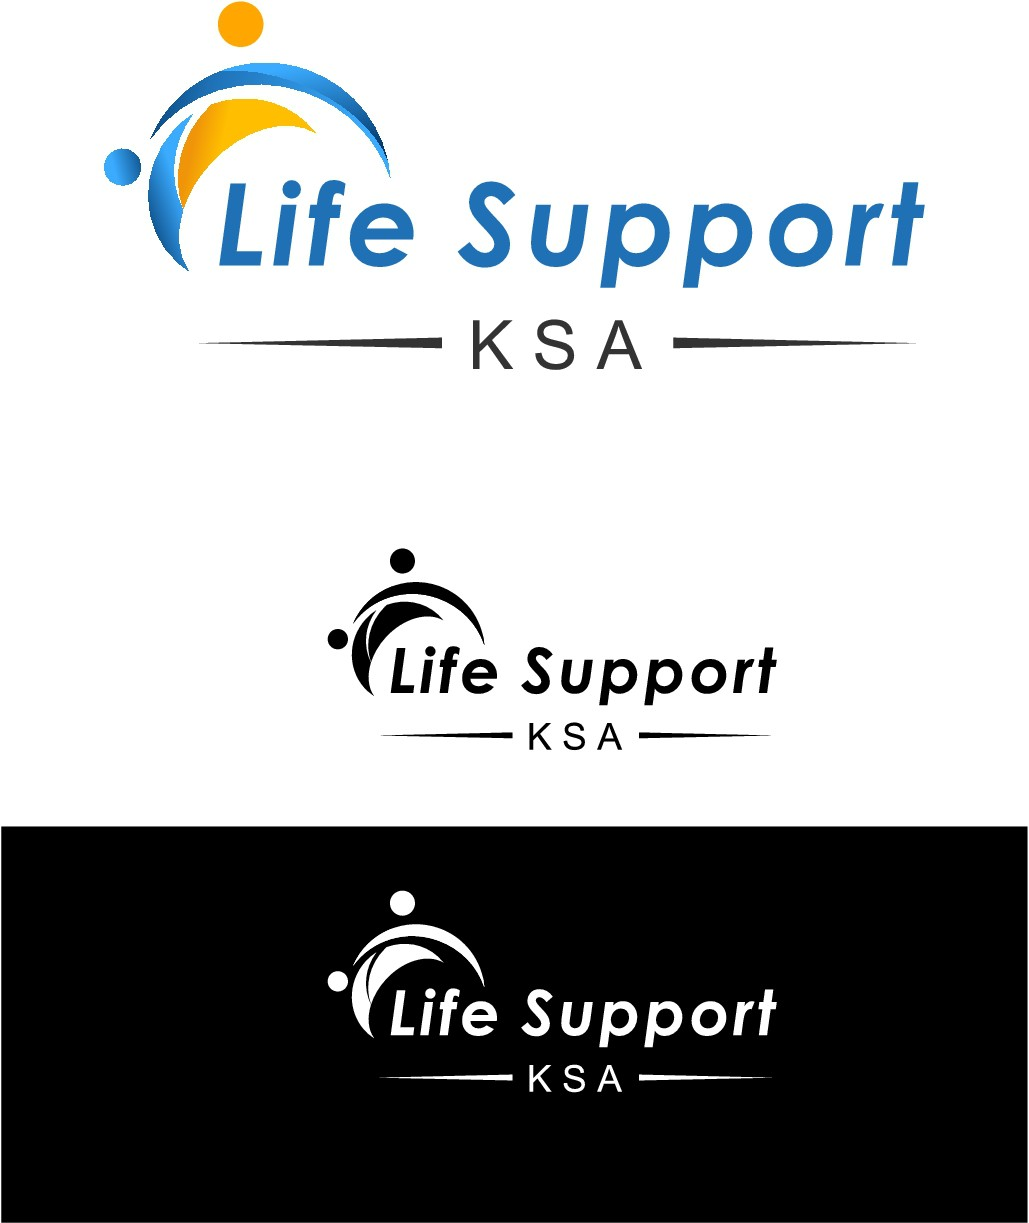 Life Support KSA is need of a simple yet creative logo